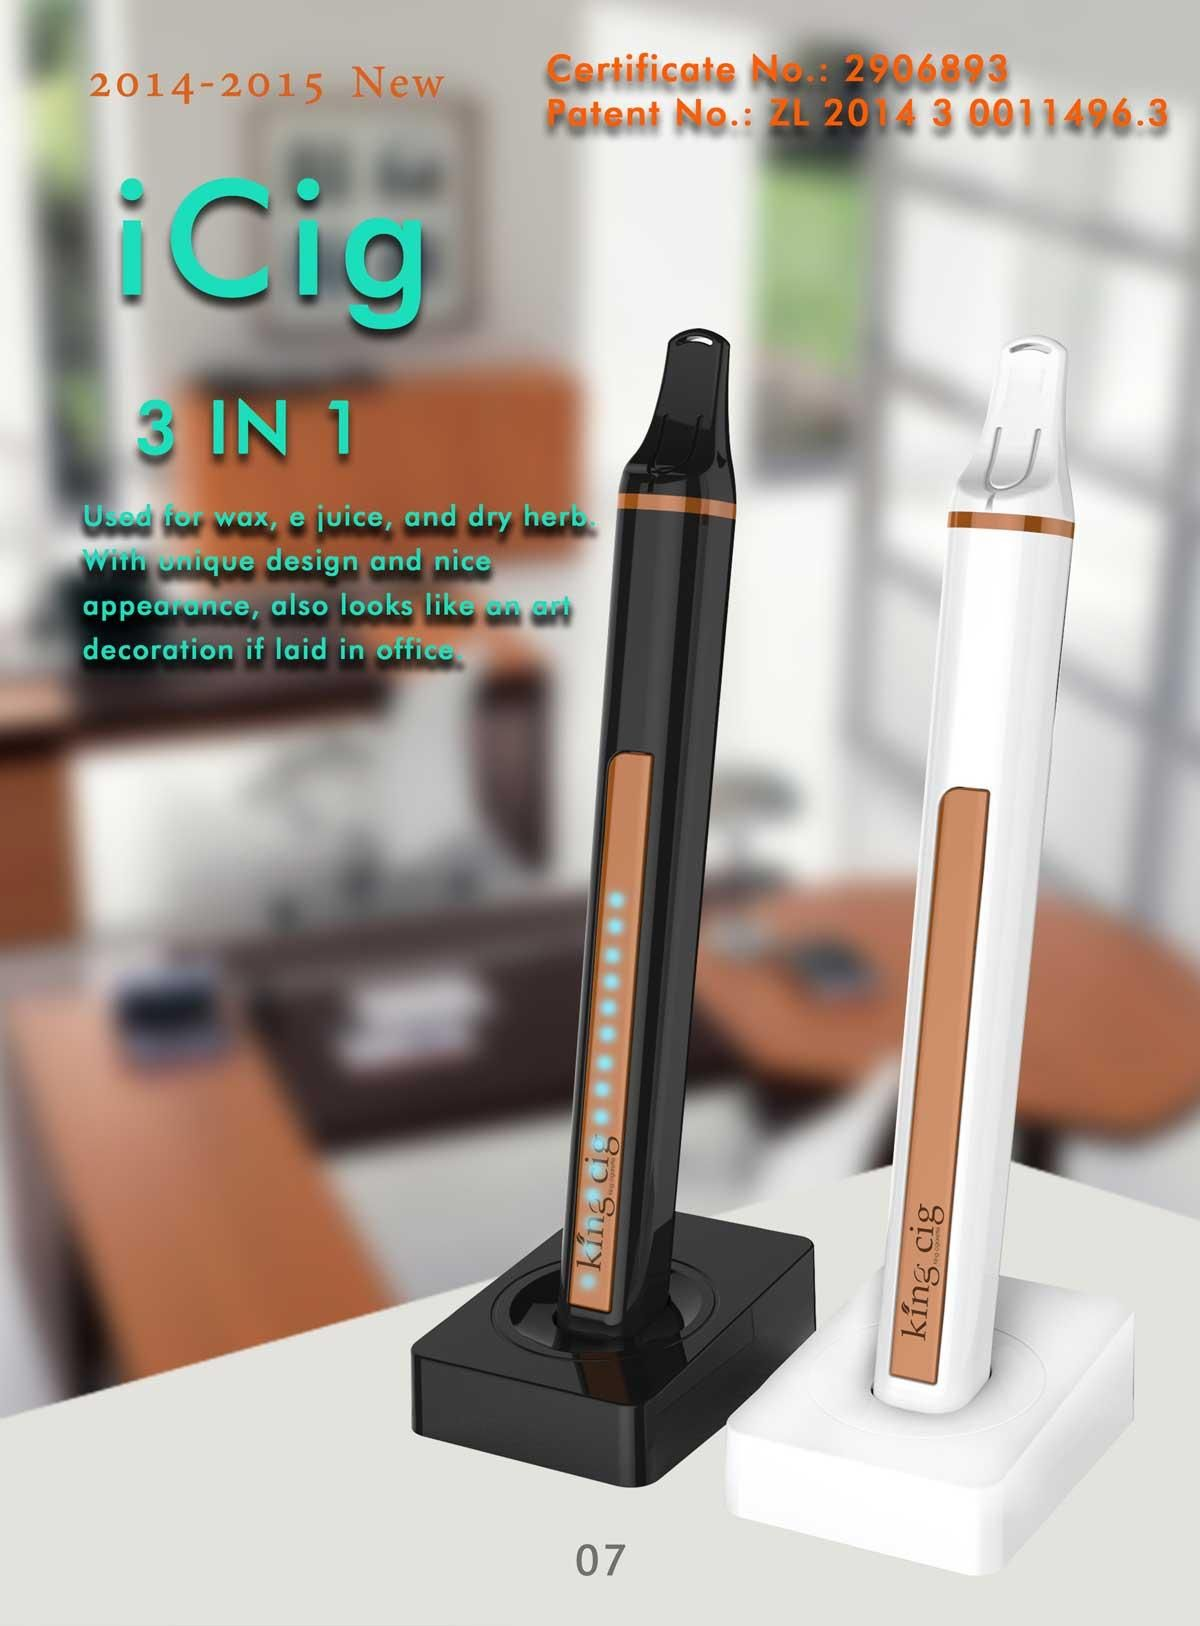 Cheap herbal vaporizers - Wholesale Icig 3in1 Vaperizer Buy New Ecigs Icig 3in1 Vaporizer For E Juice Wax